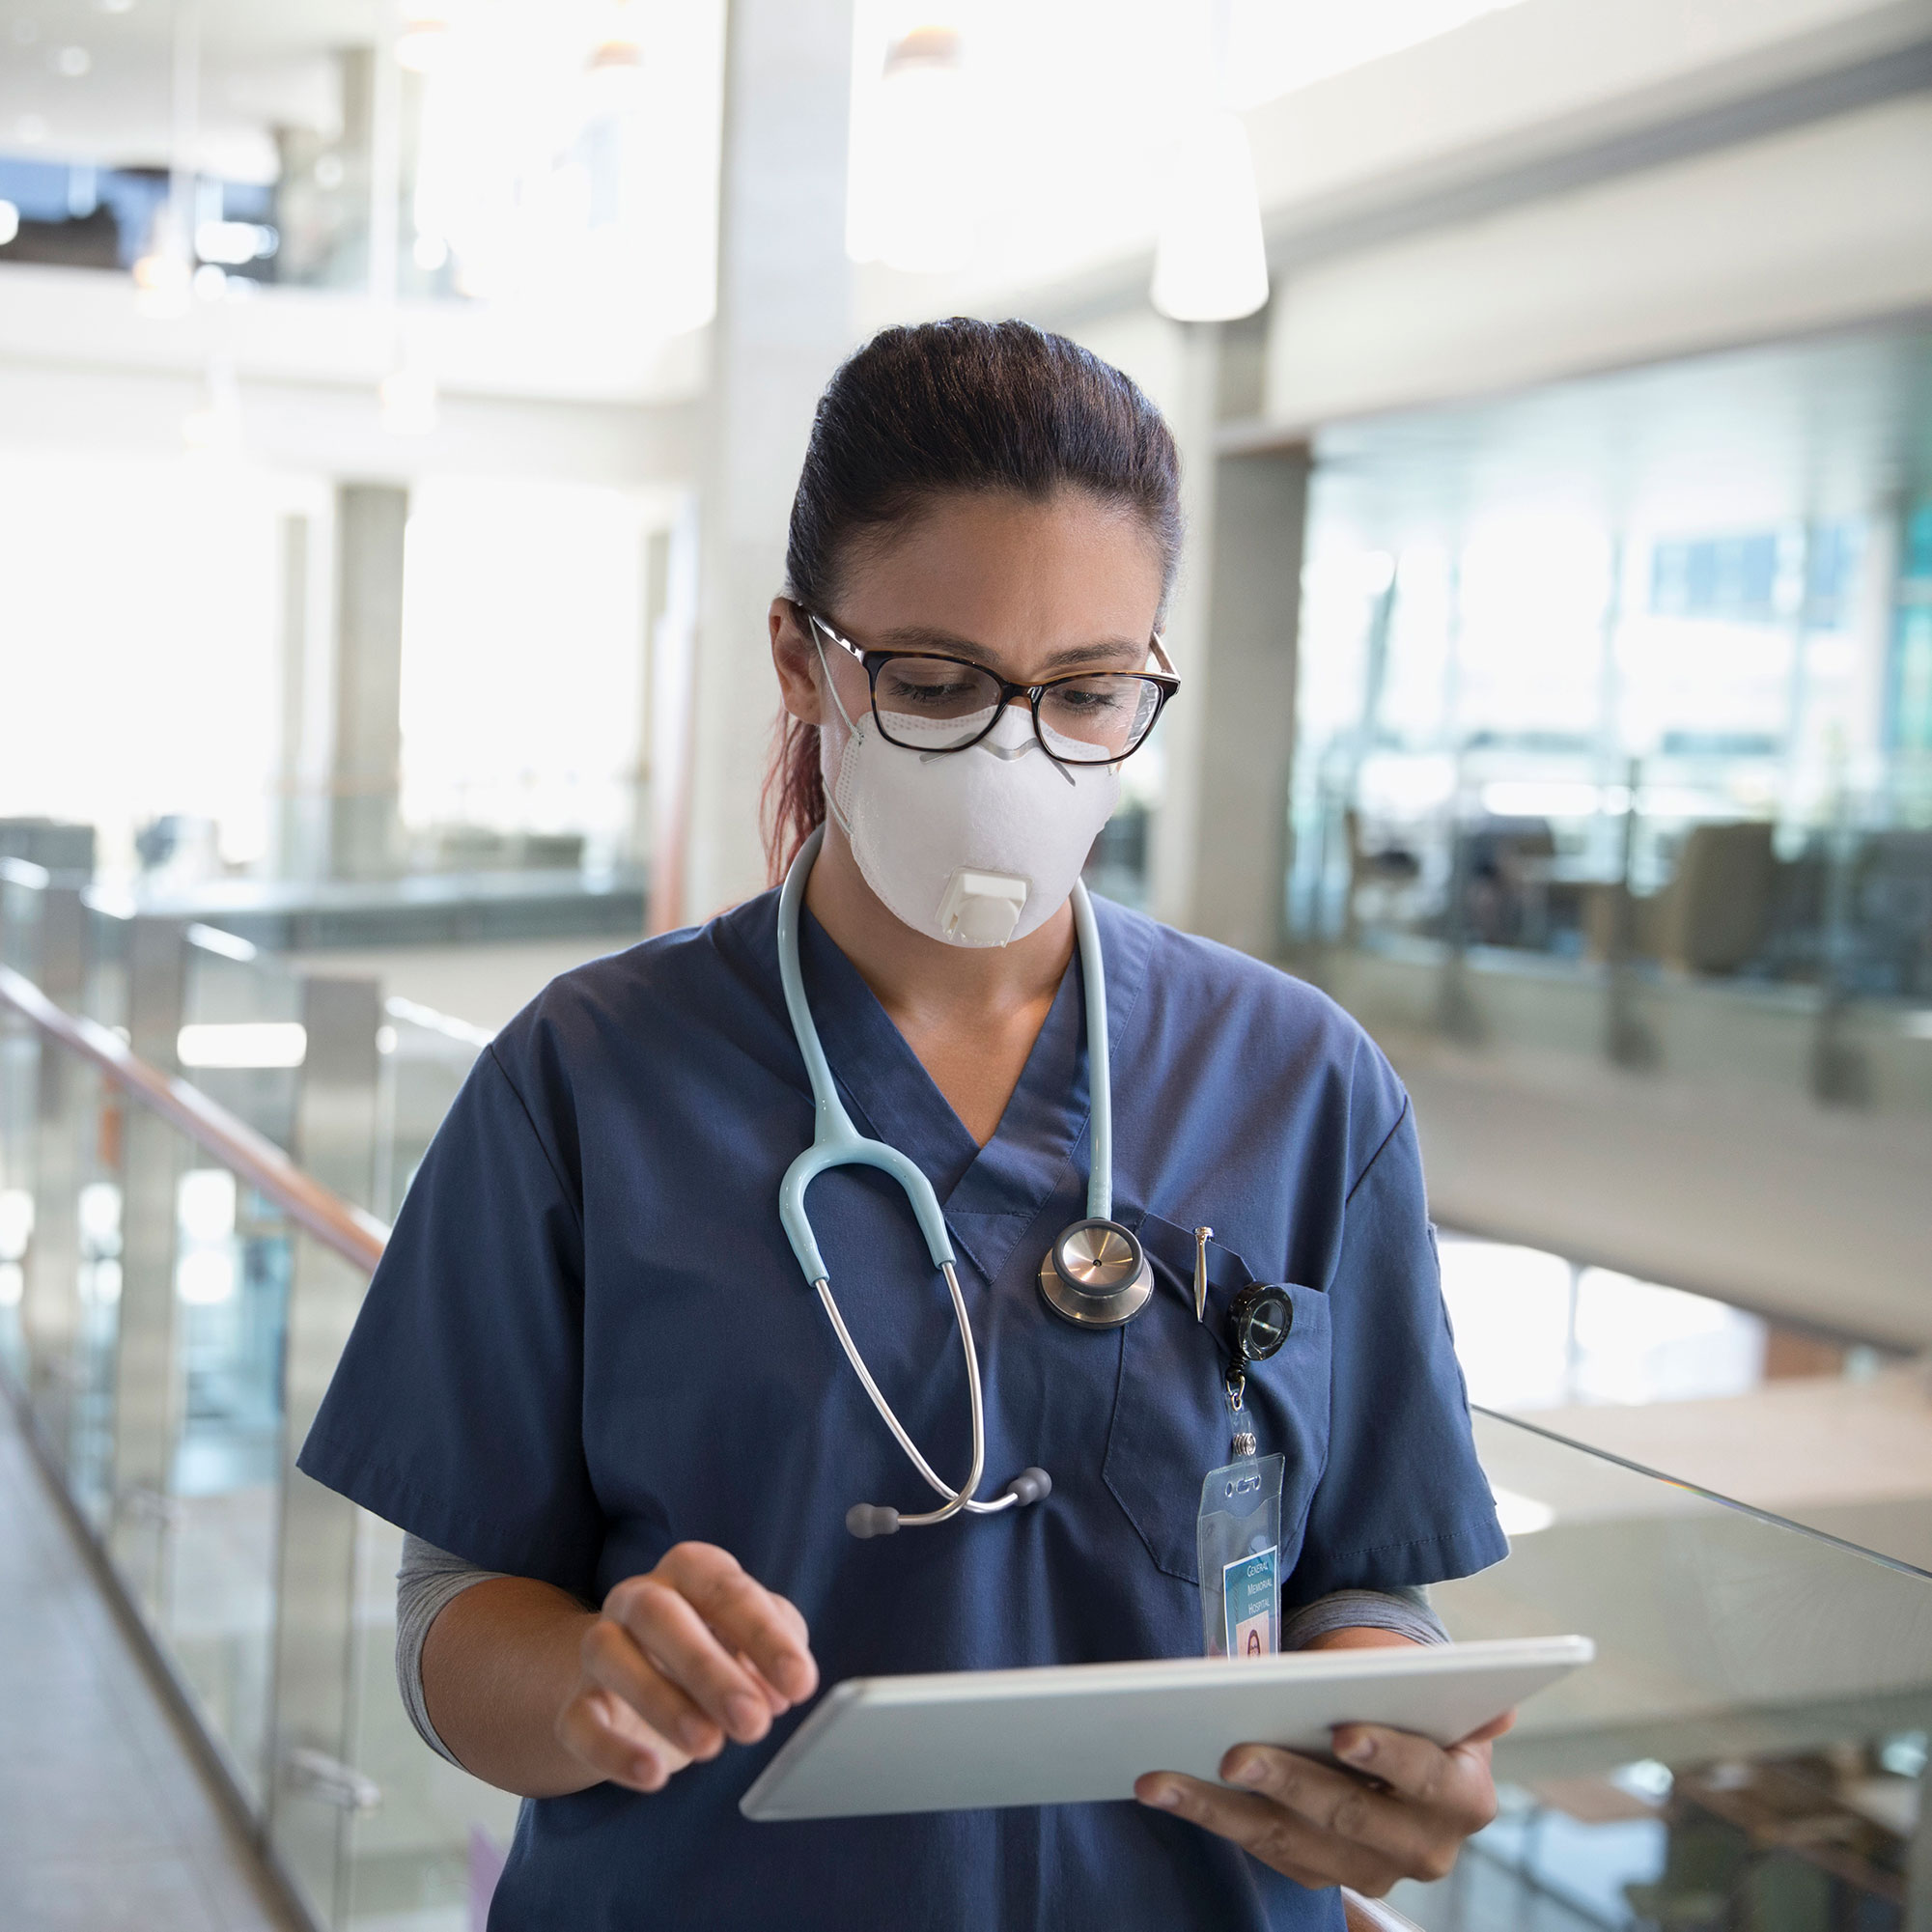 A nurse, wearing a scrubs and a stethoscope, stands in a walkway to user her tablet.